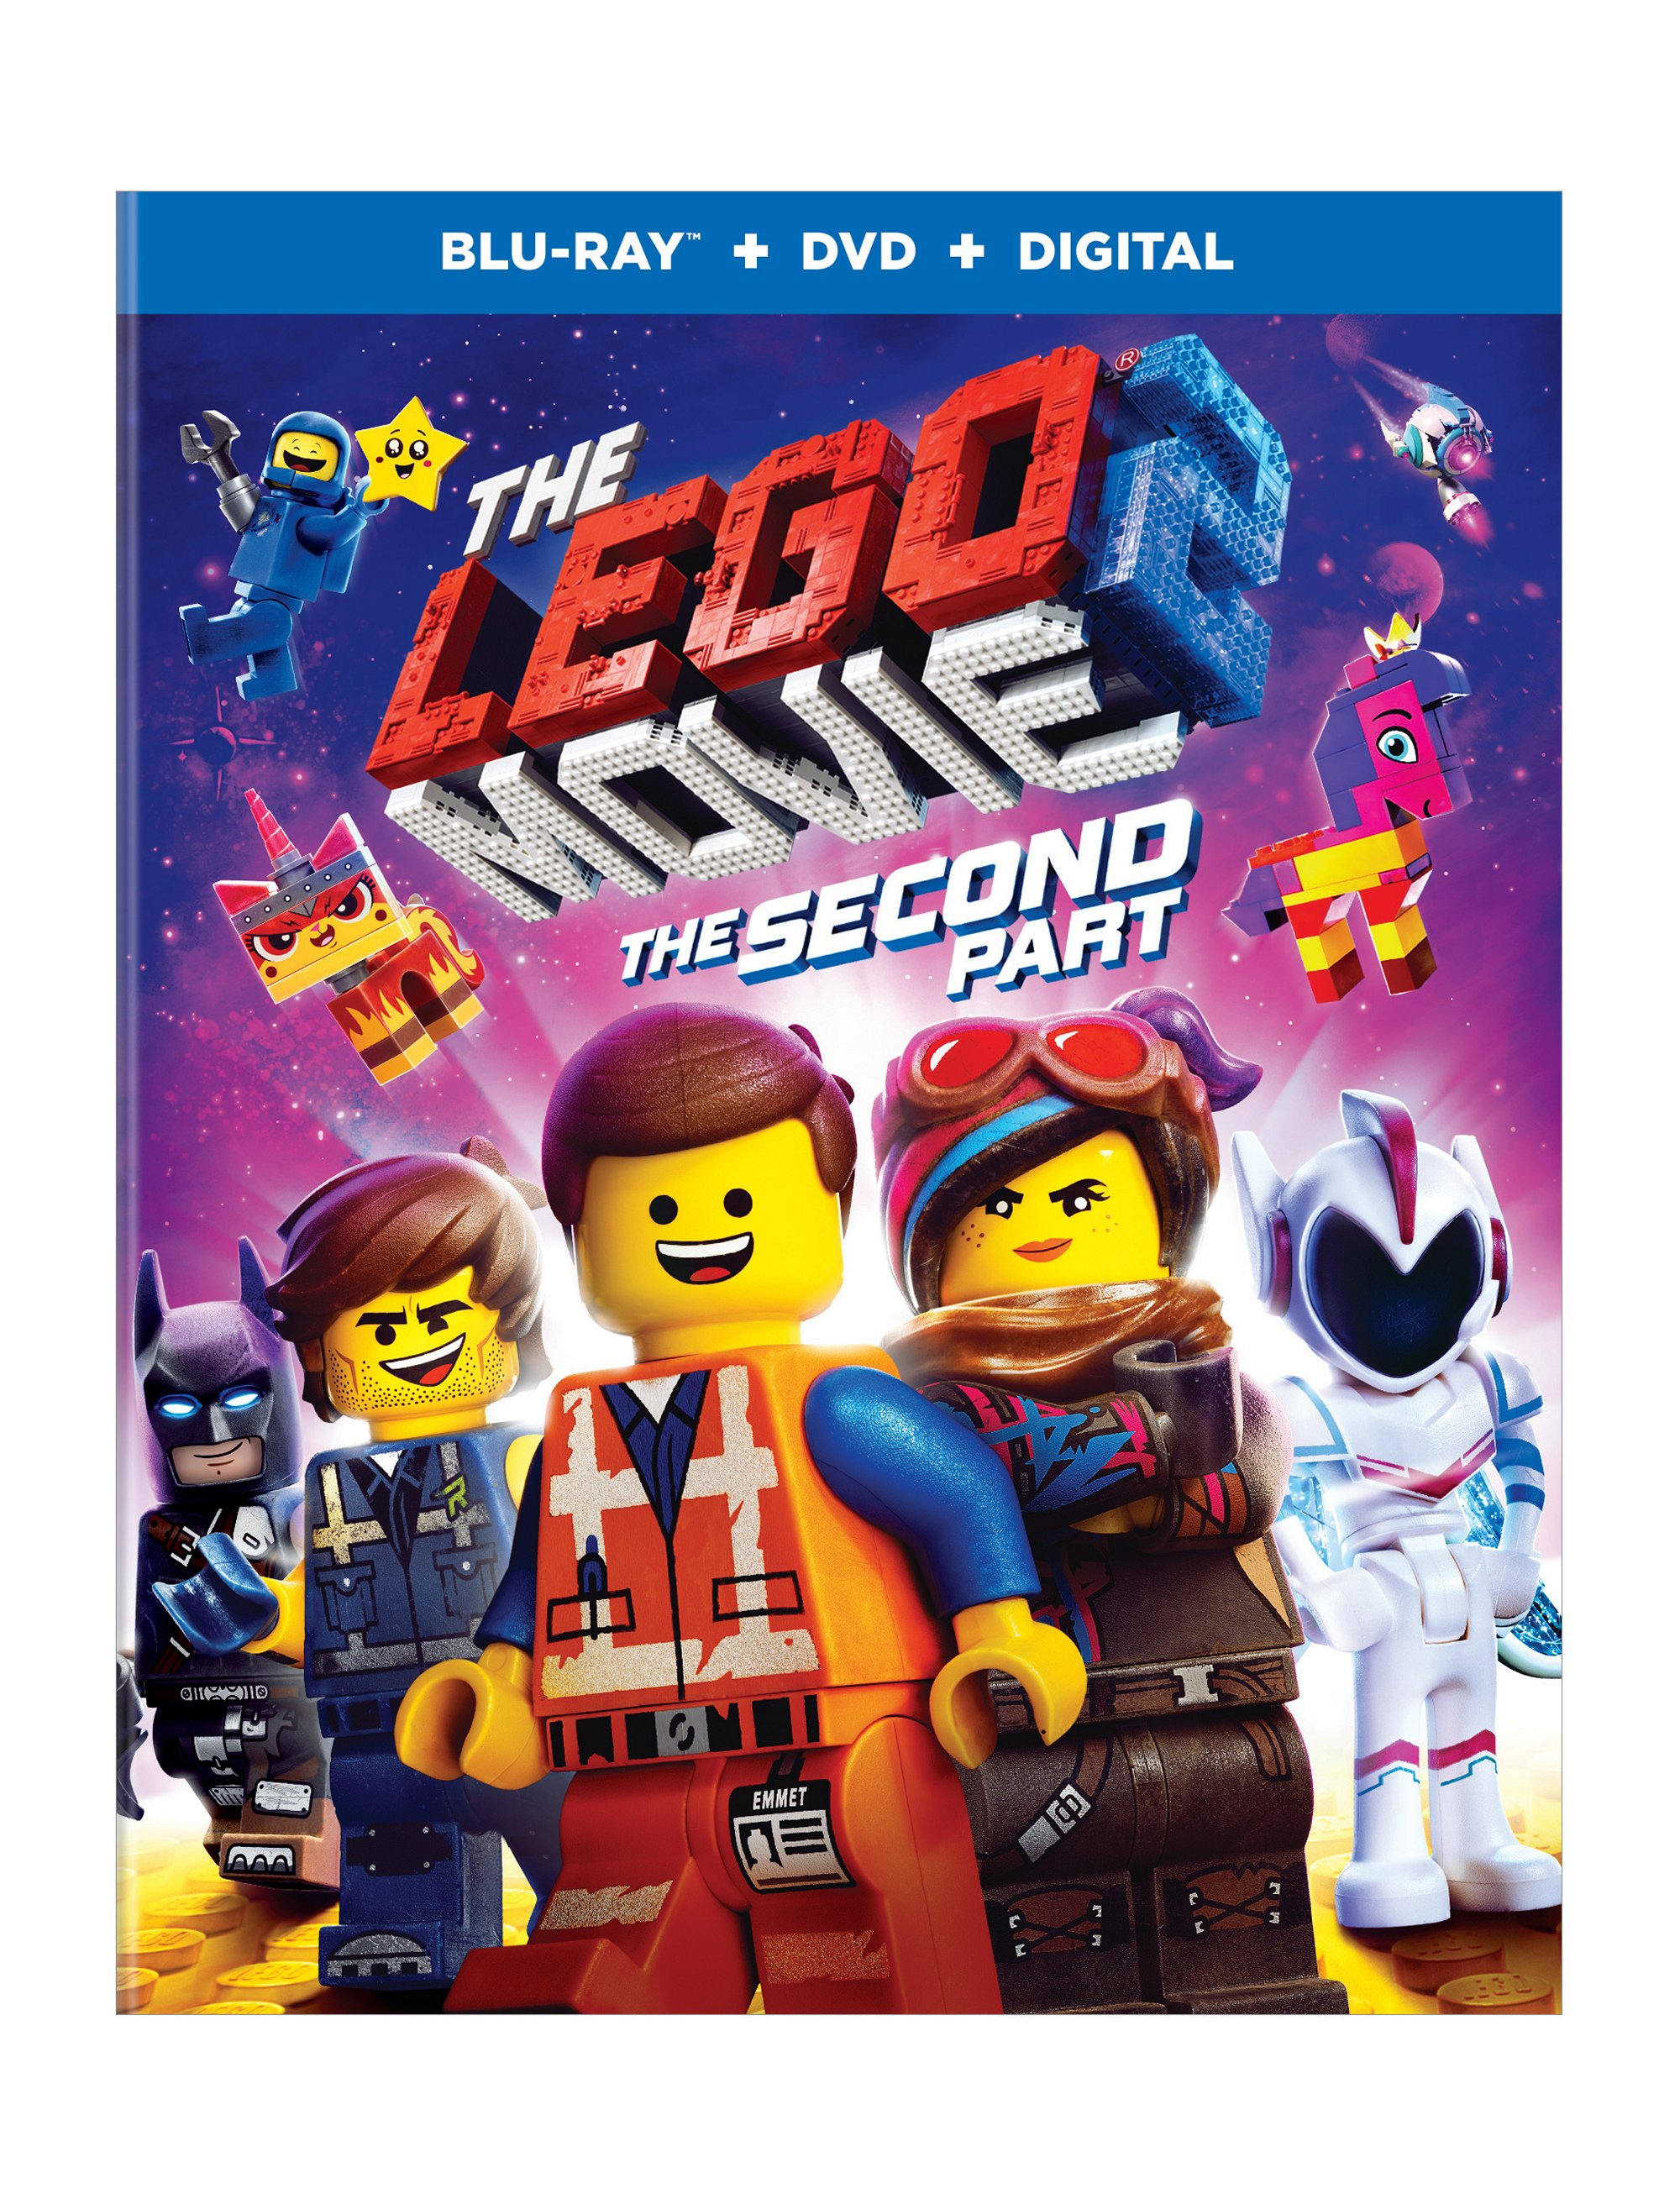 The Lego Movie 2 The Second Part Blu Ray 5005885 The Lego Movie 2 Buy Online At The Official Lego Shop Ca